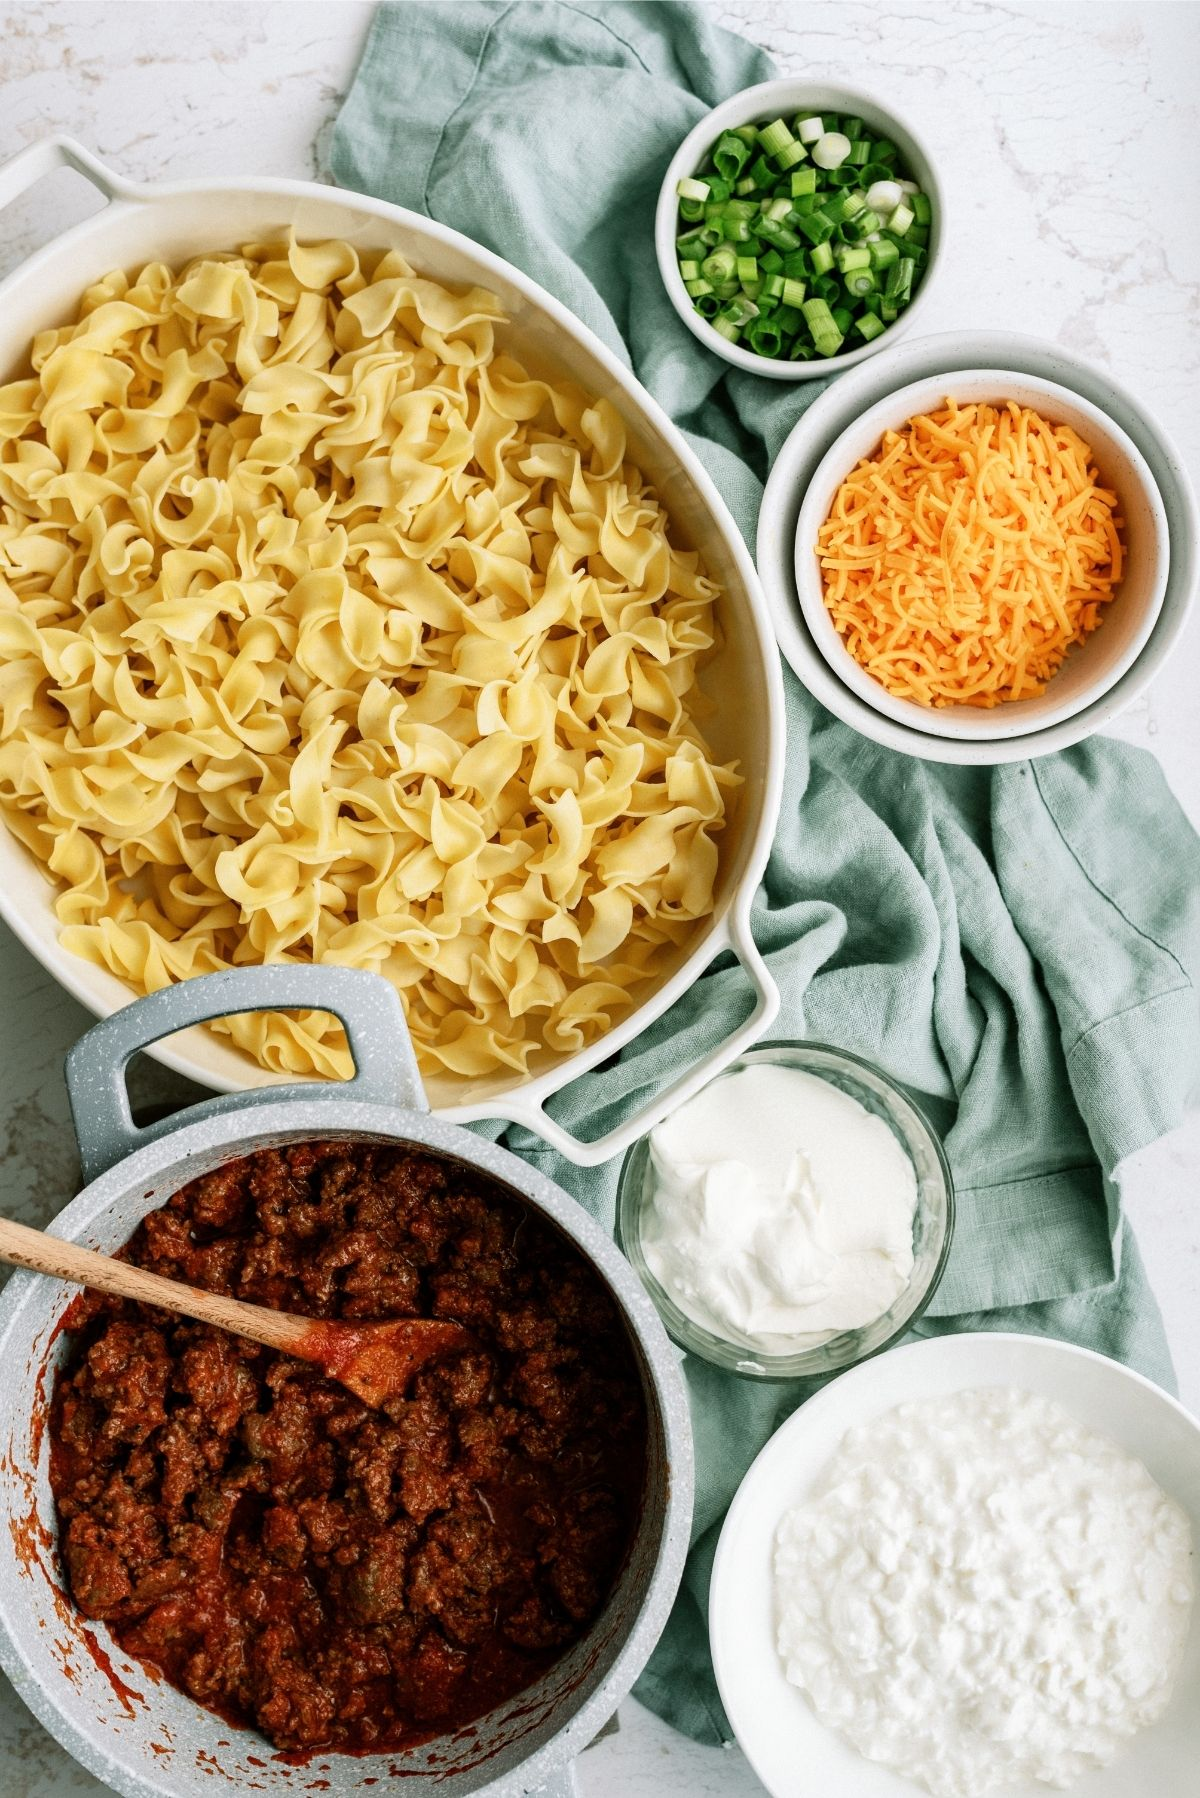 ingredients for beef and noodle casserole